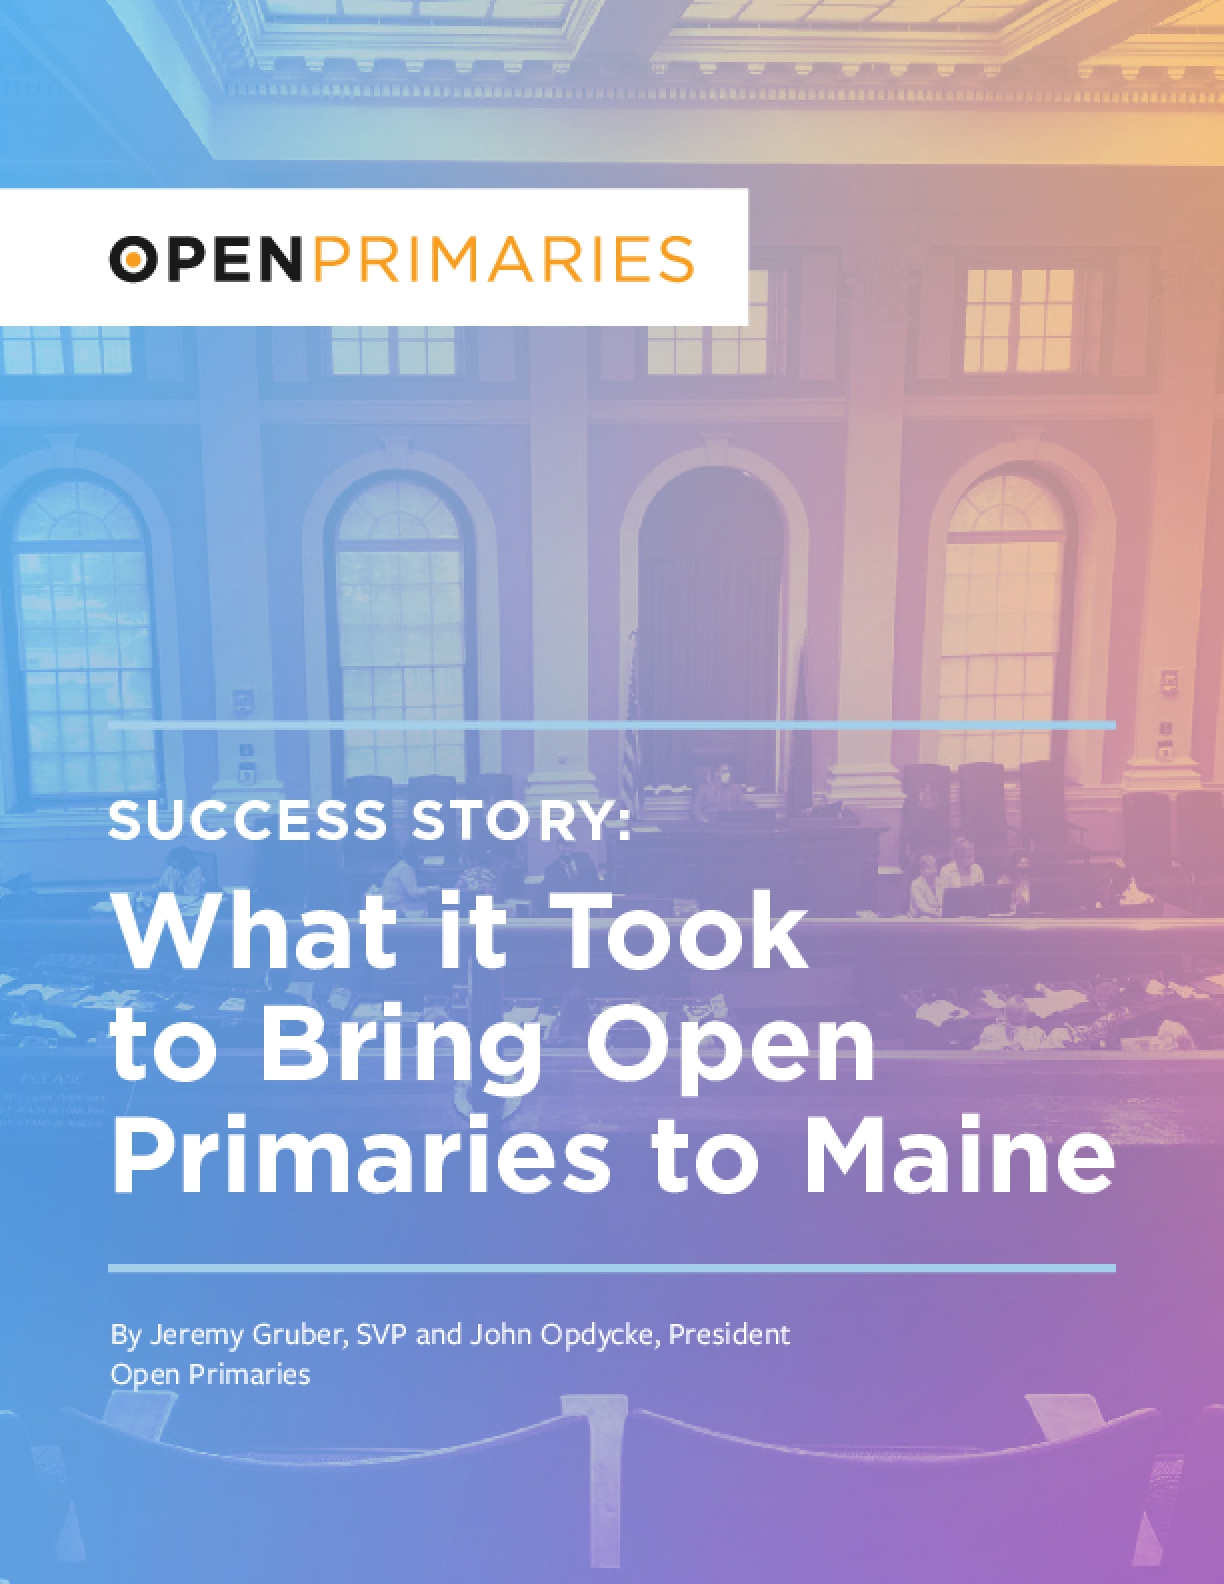 Success Story: What it Took to Bring Open Primaries to Maine